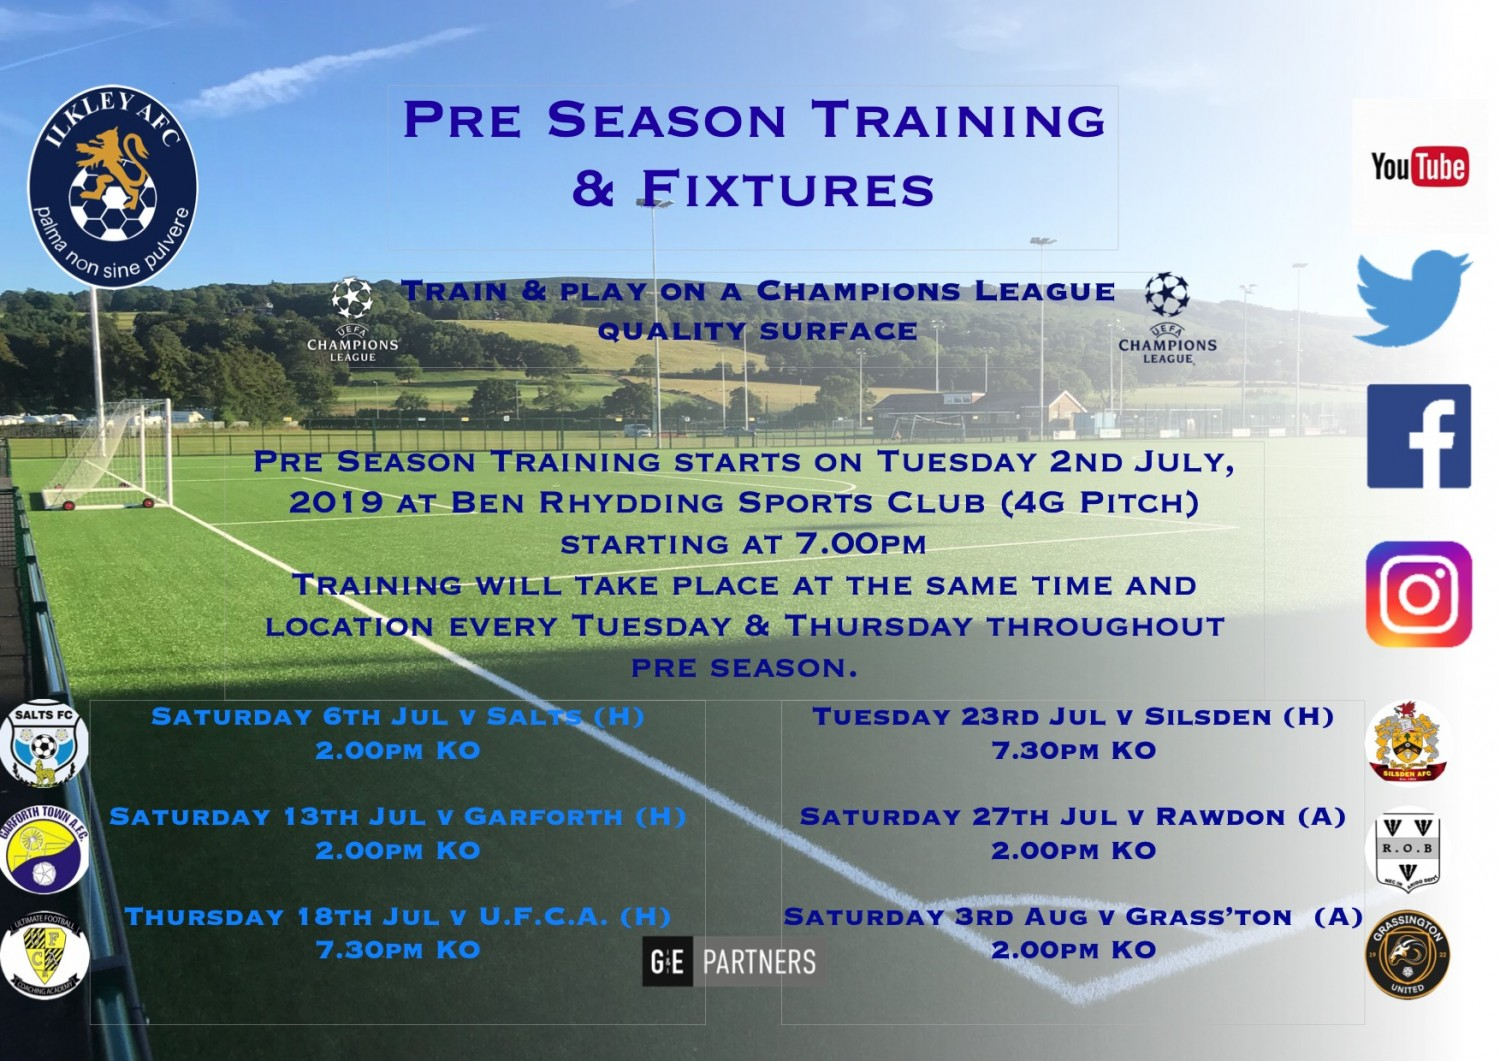 Pre Season Training & Fixtures ANNOUNCED!